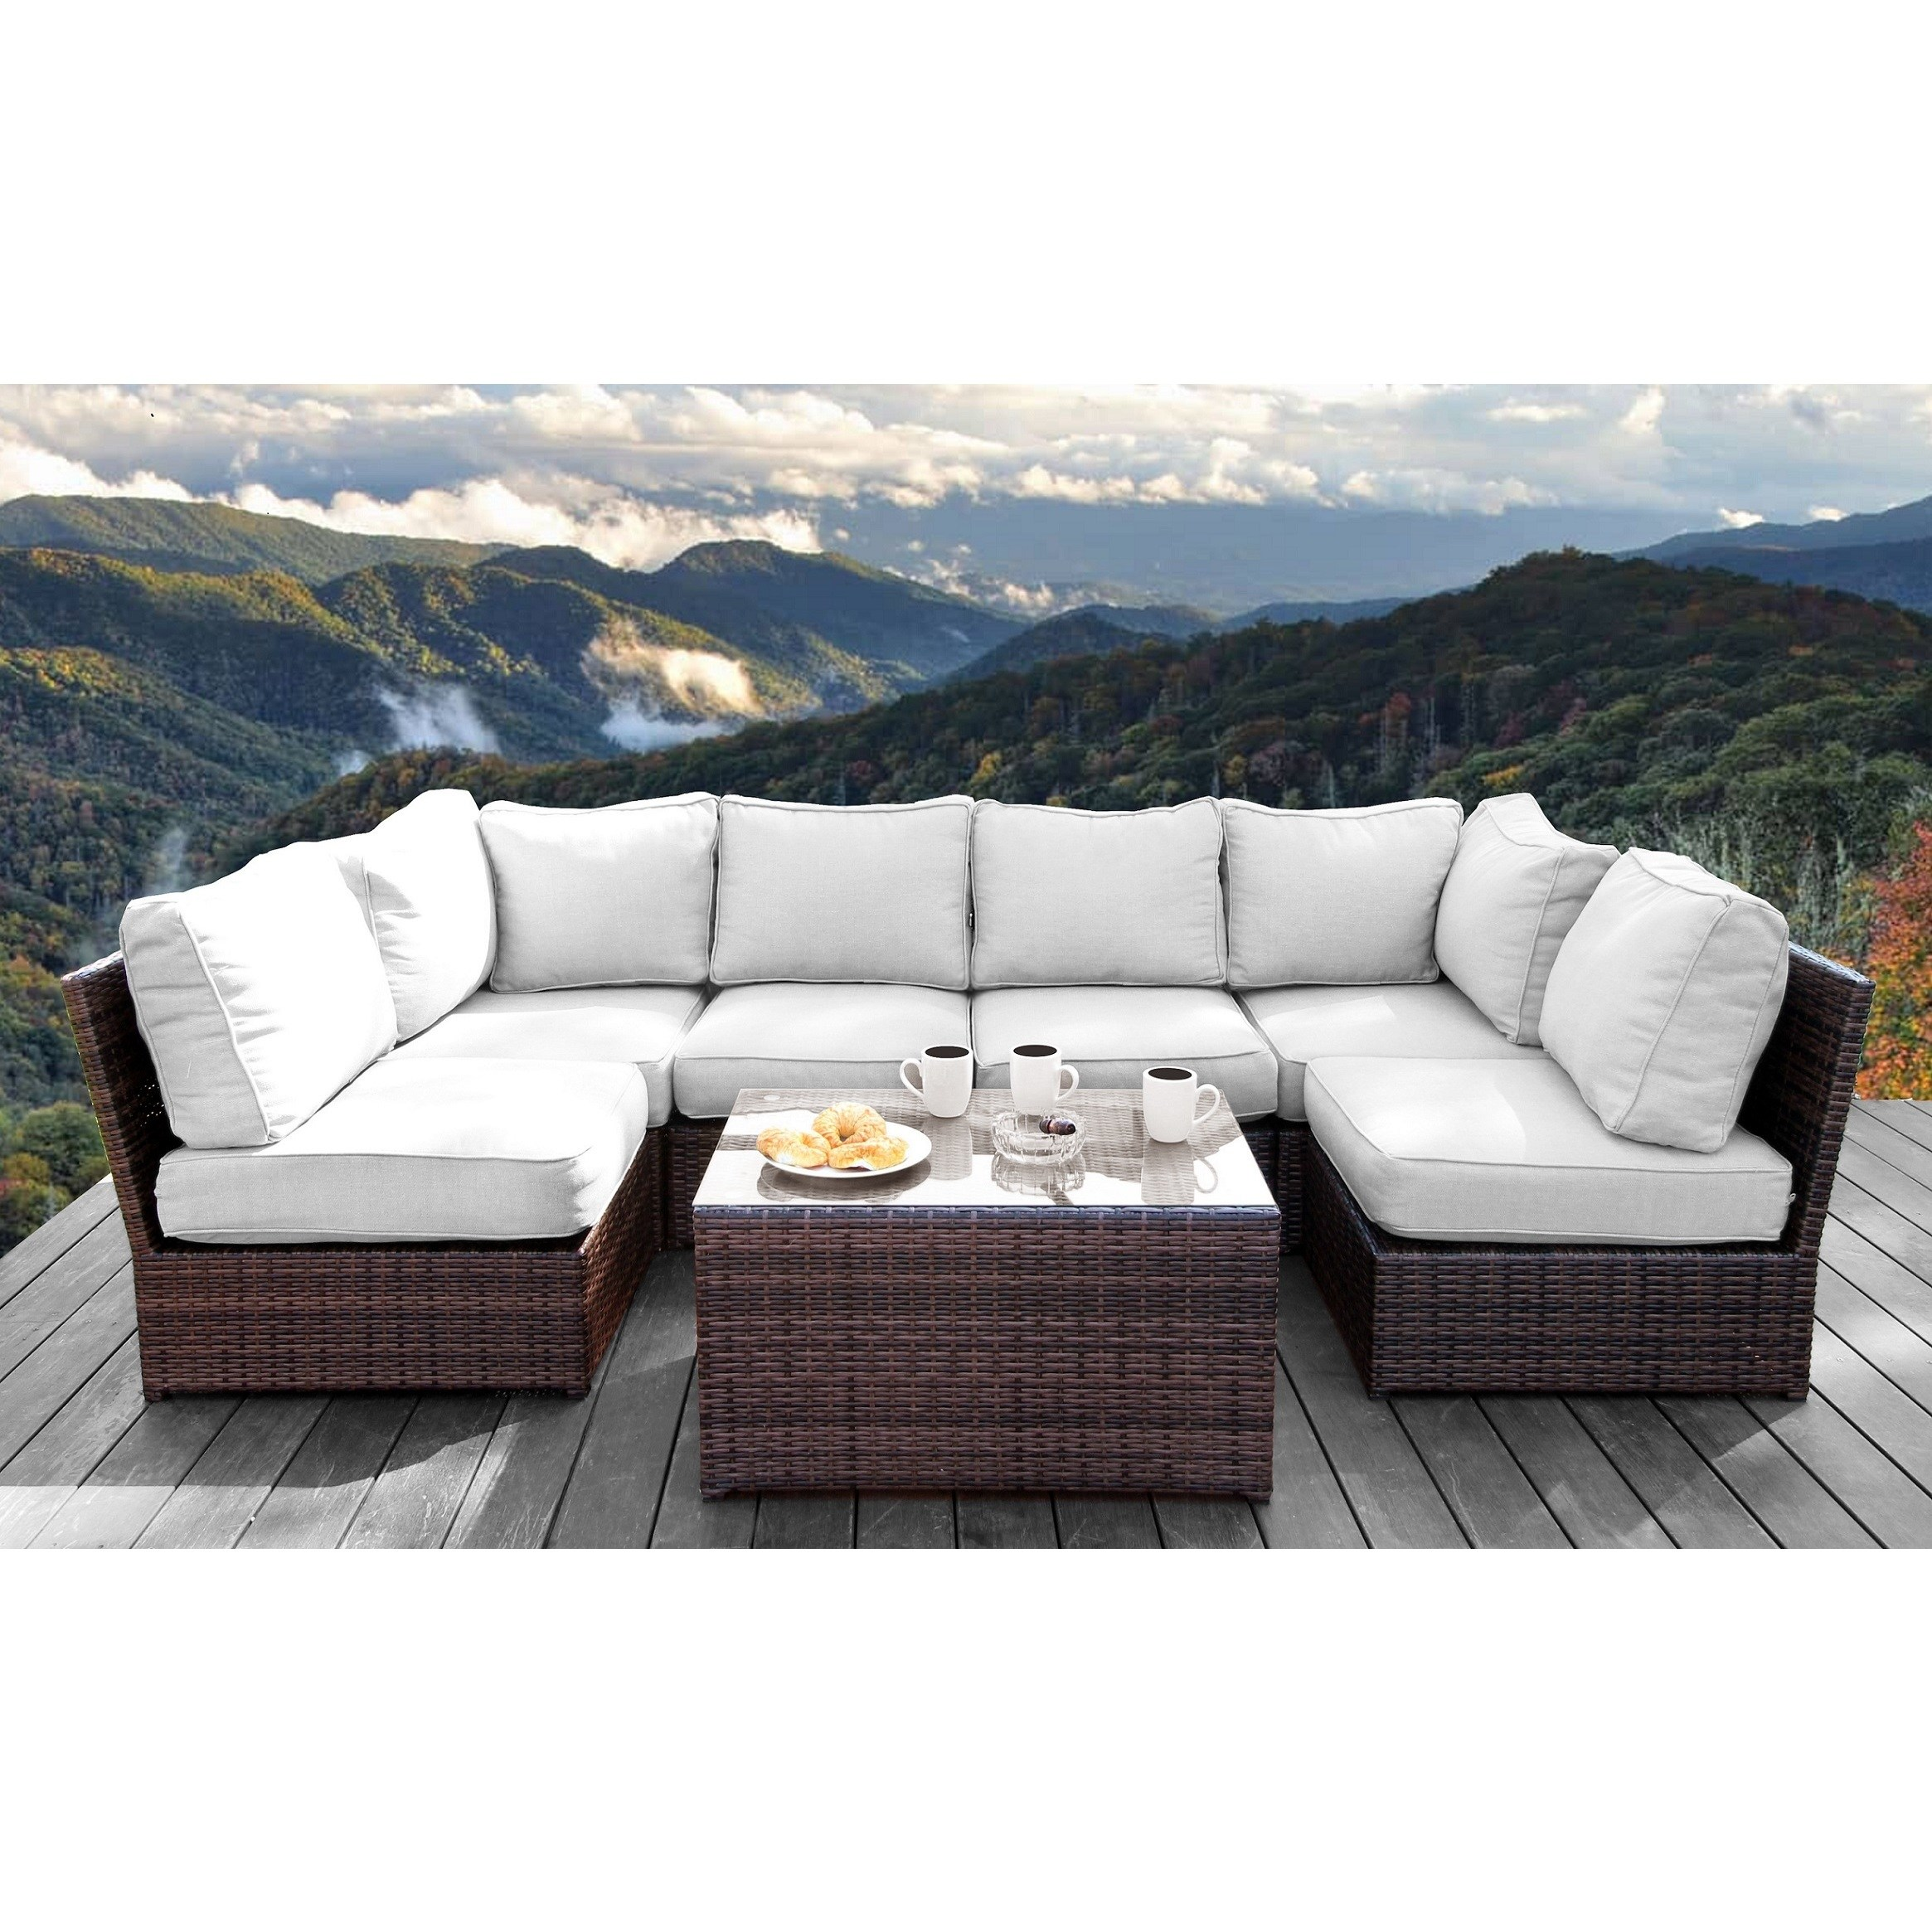 Living Source International All Weather Resort Grade Outdoor Furniture Patio Sofa Set With Back Cushions - 7 Piece Conversation Lounge